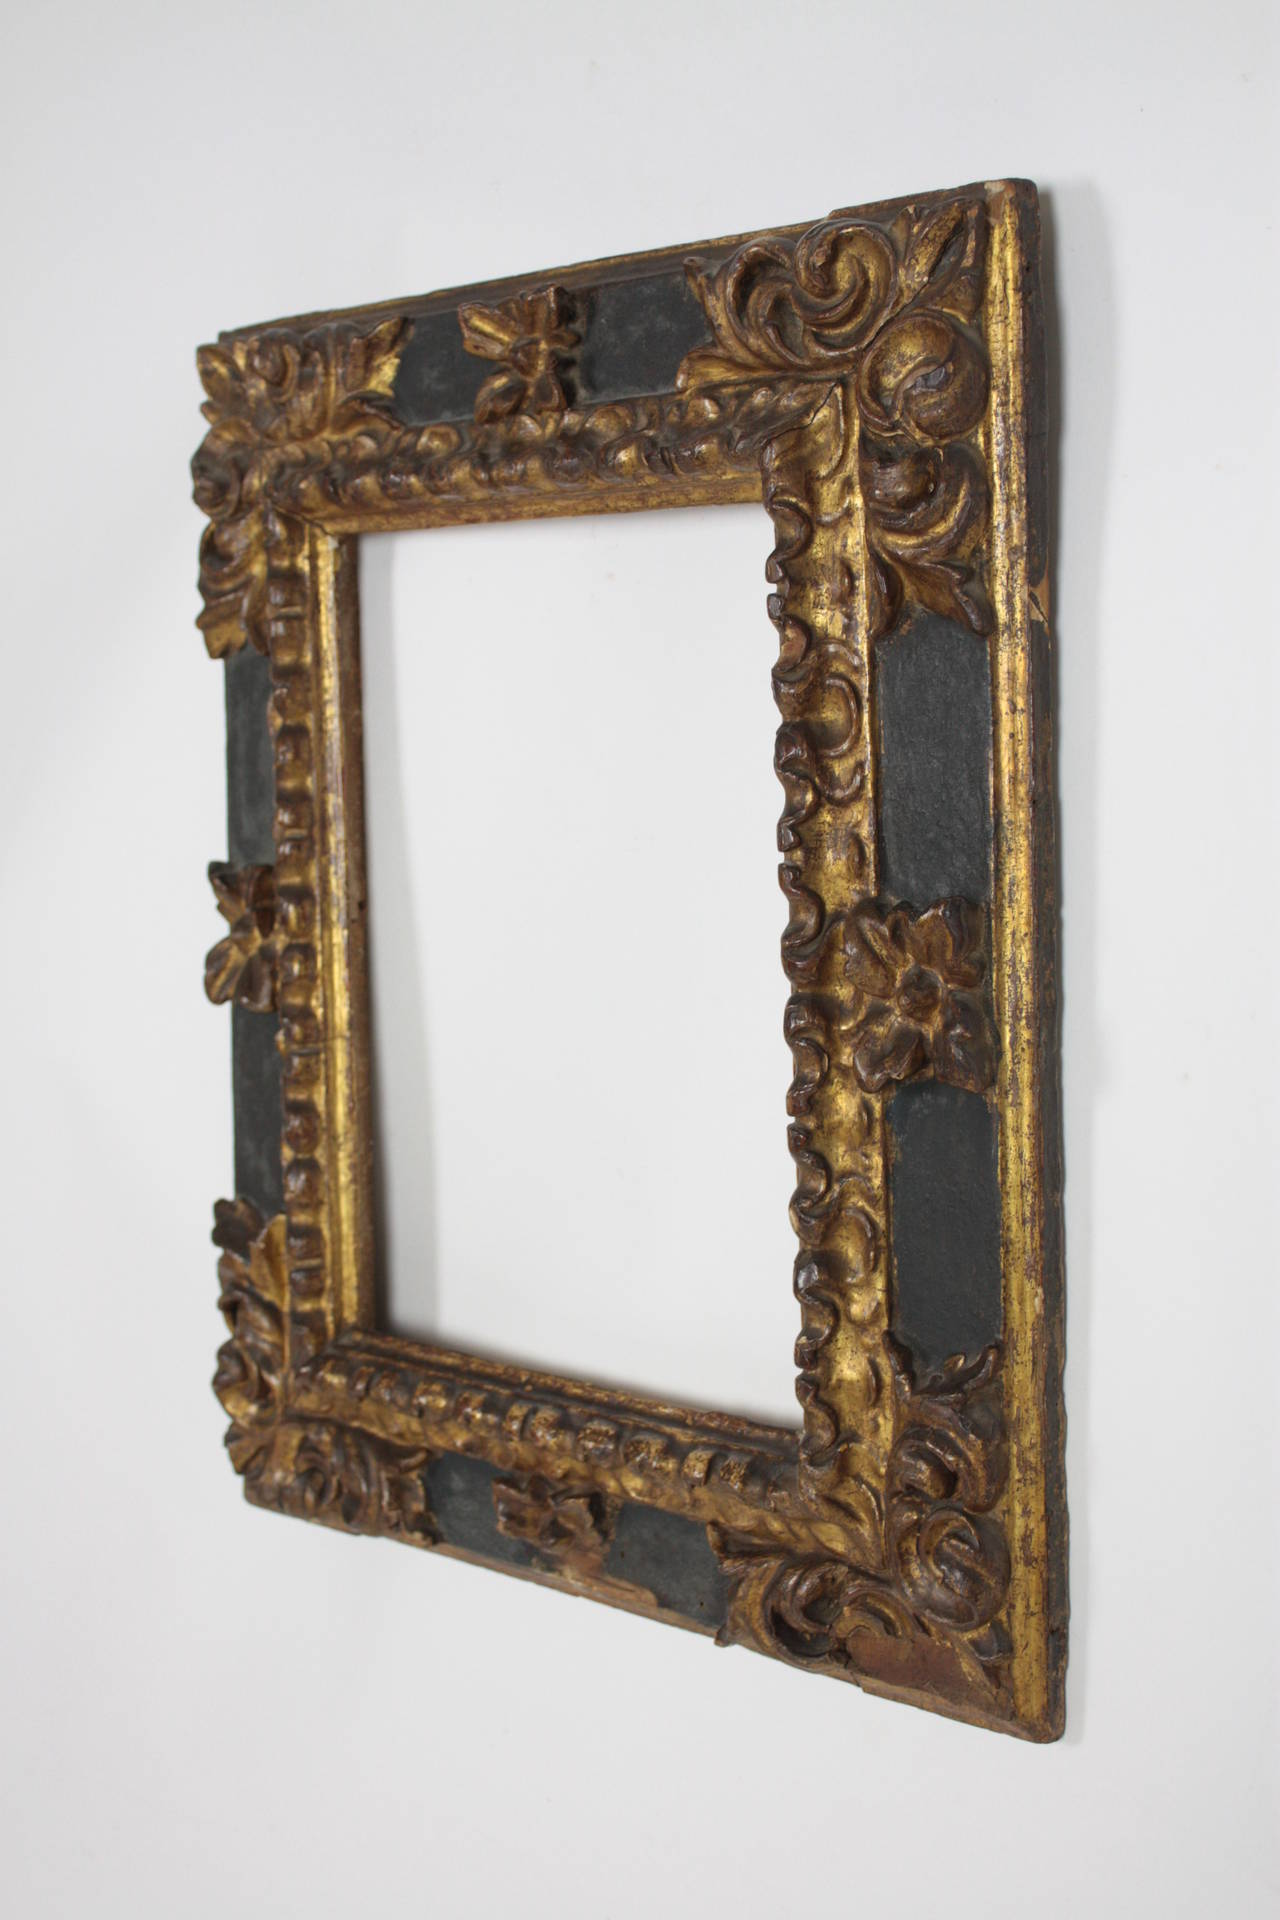 17th Century Spanish Baroque Carved Wood Gold Leaf Frame For Sale at ...